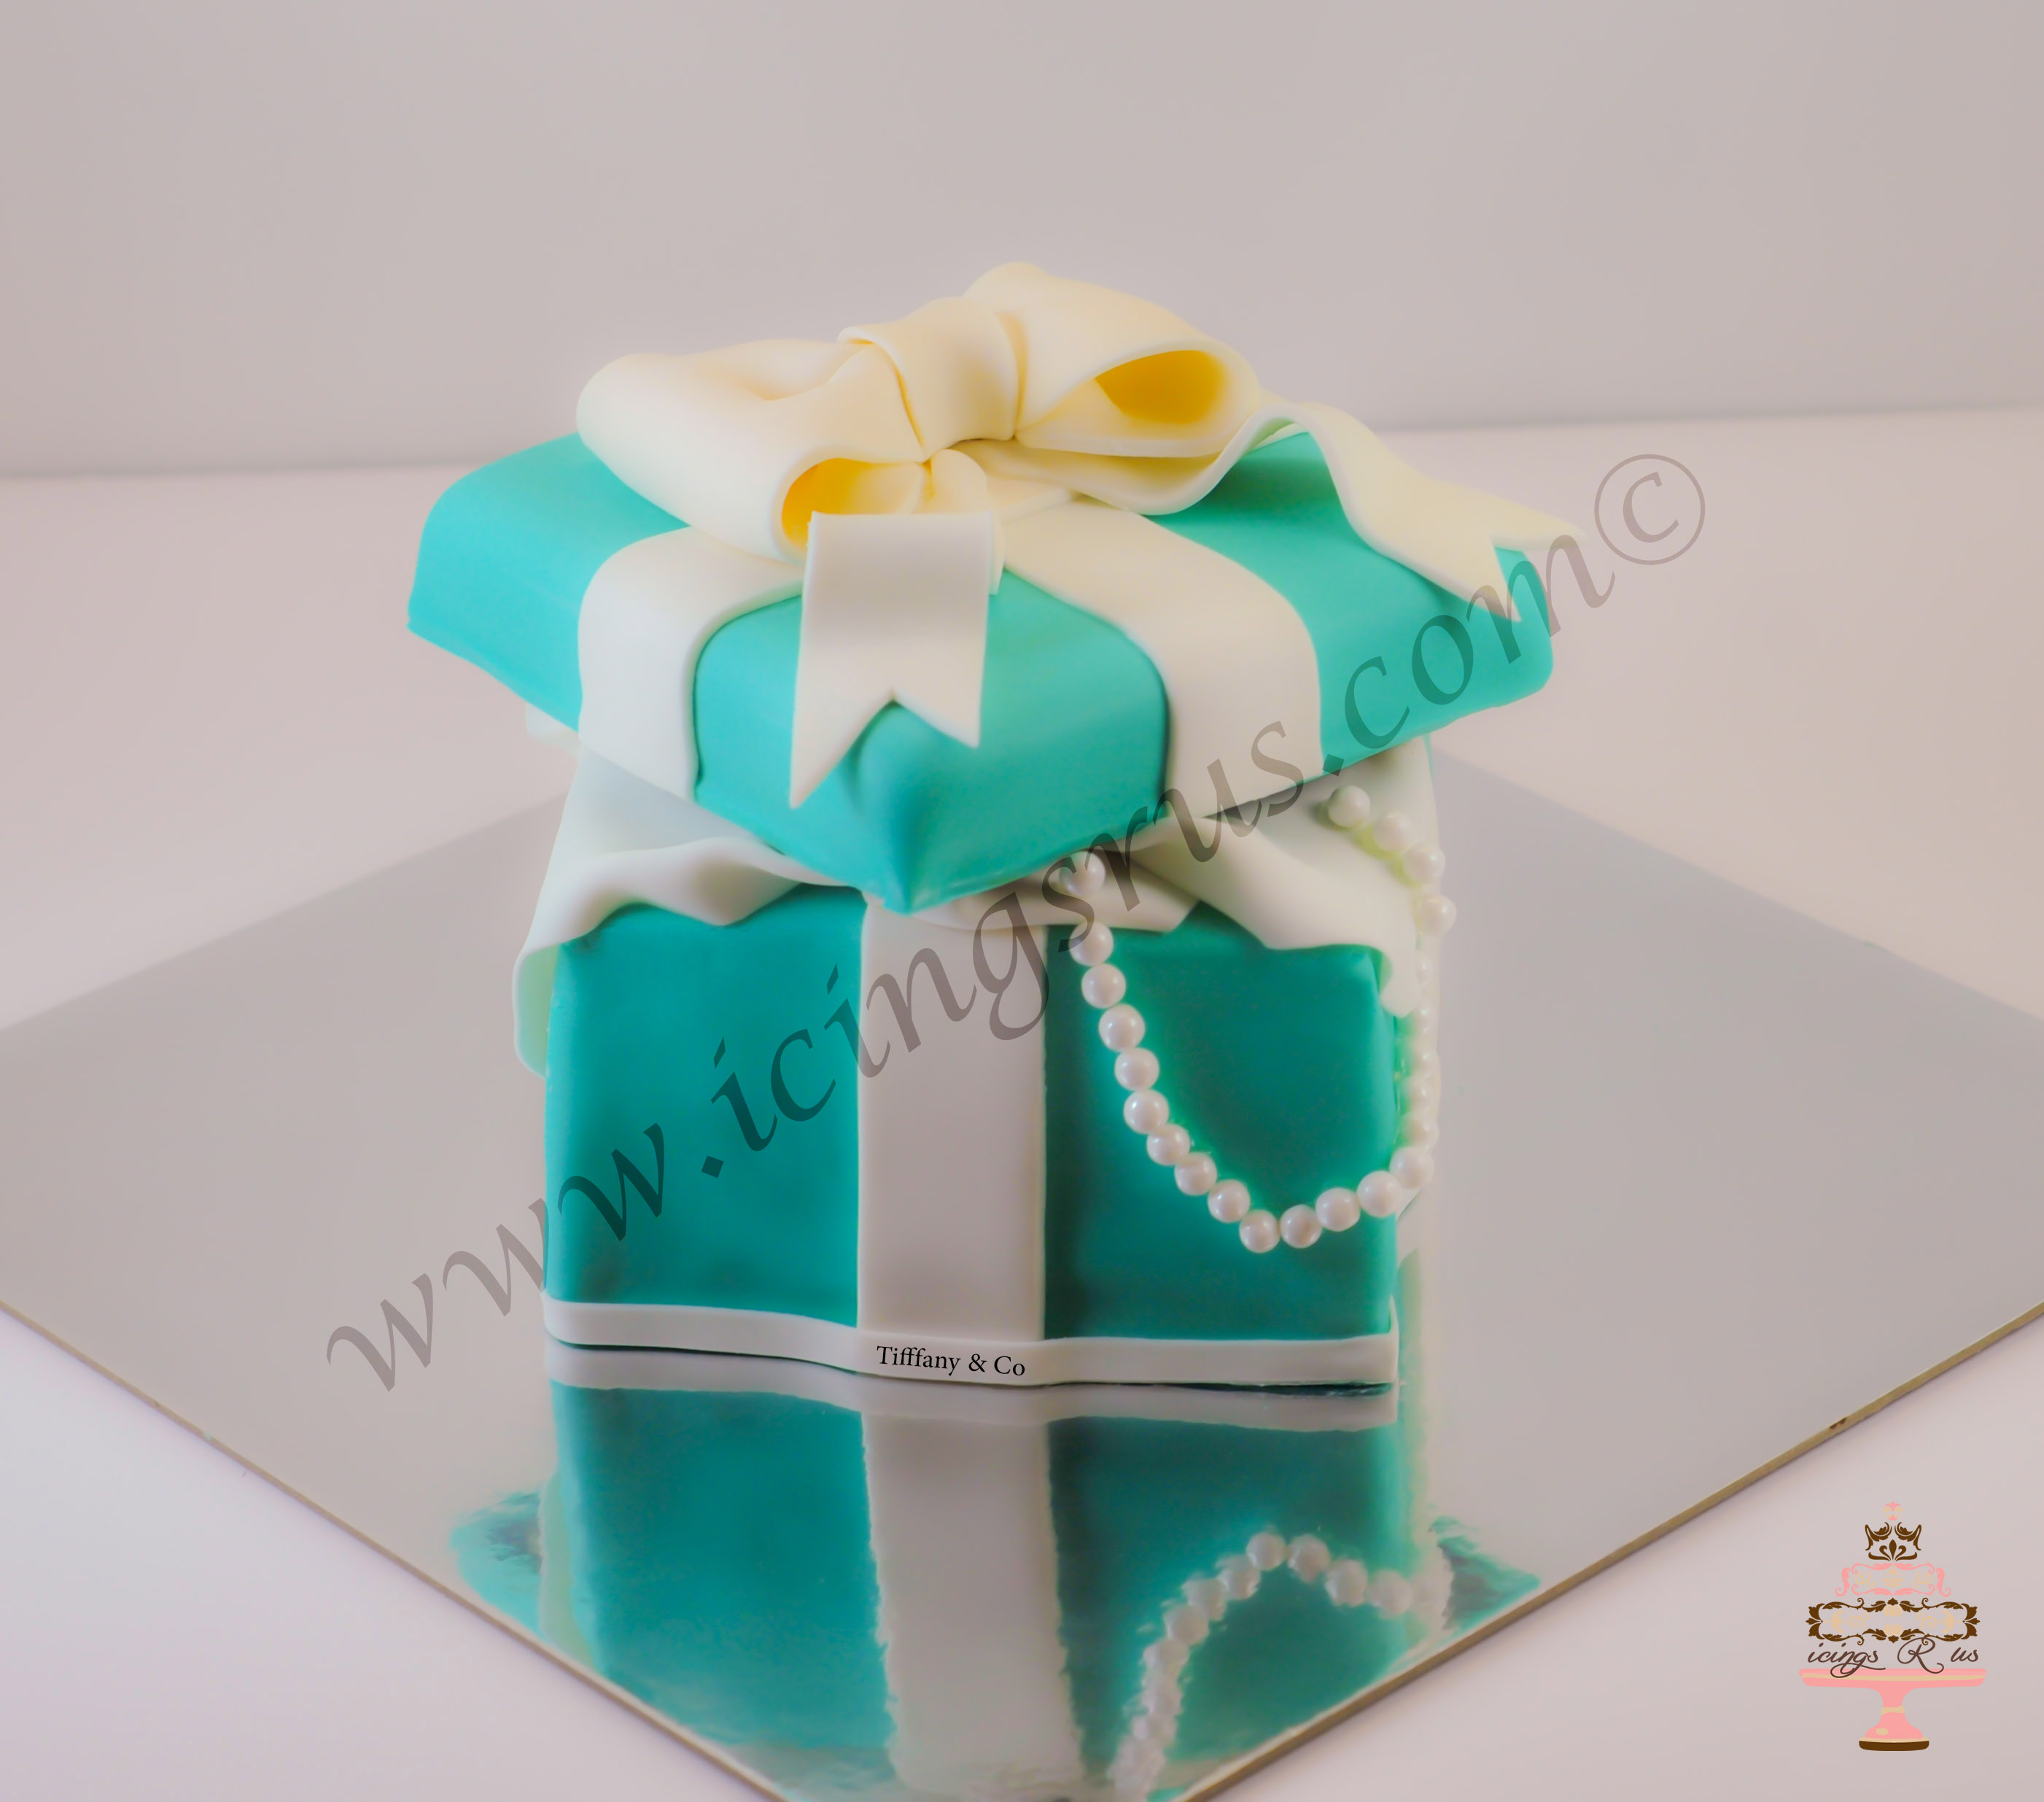 tiffany-box-birthday-cake